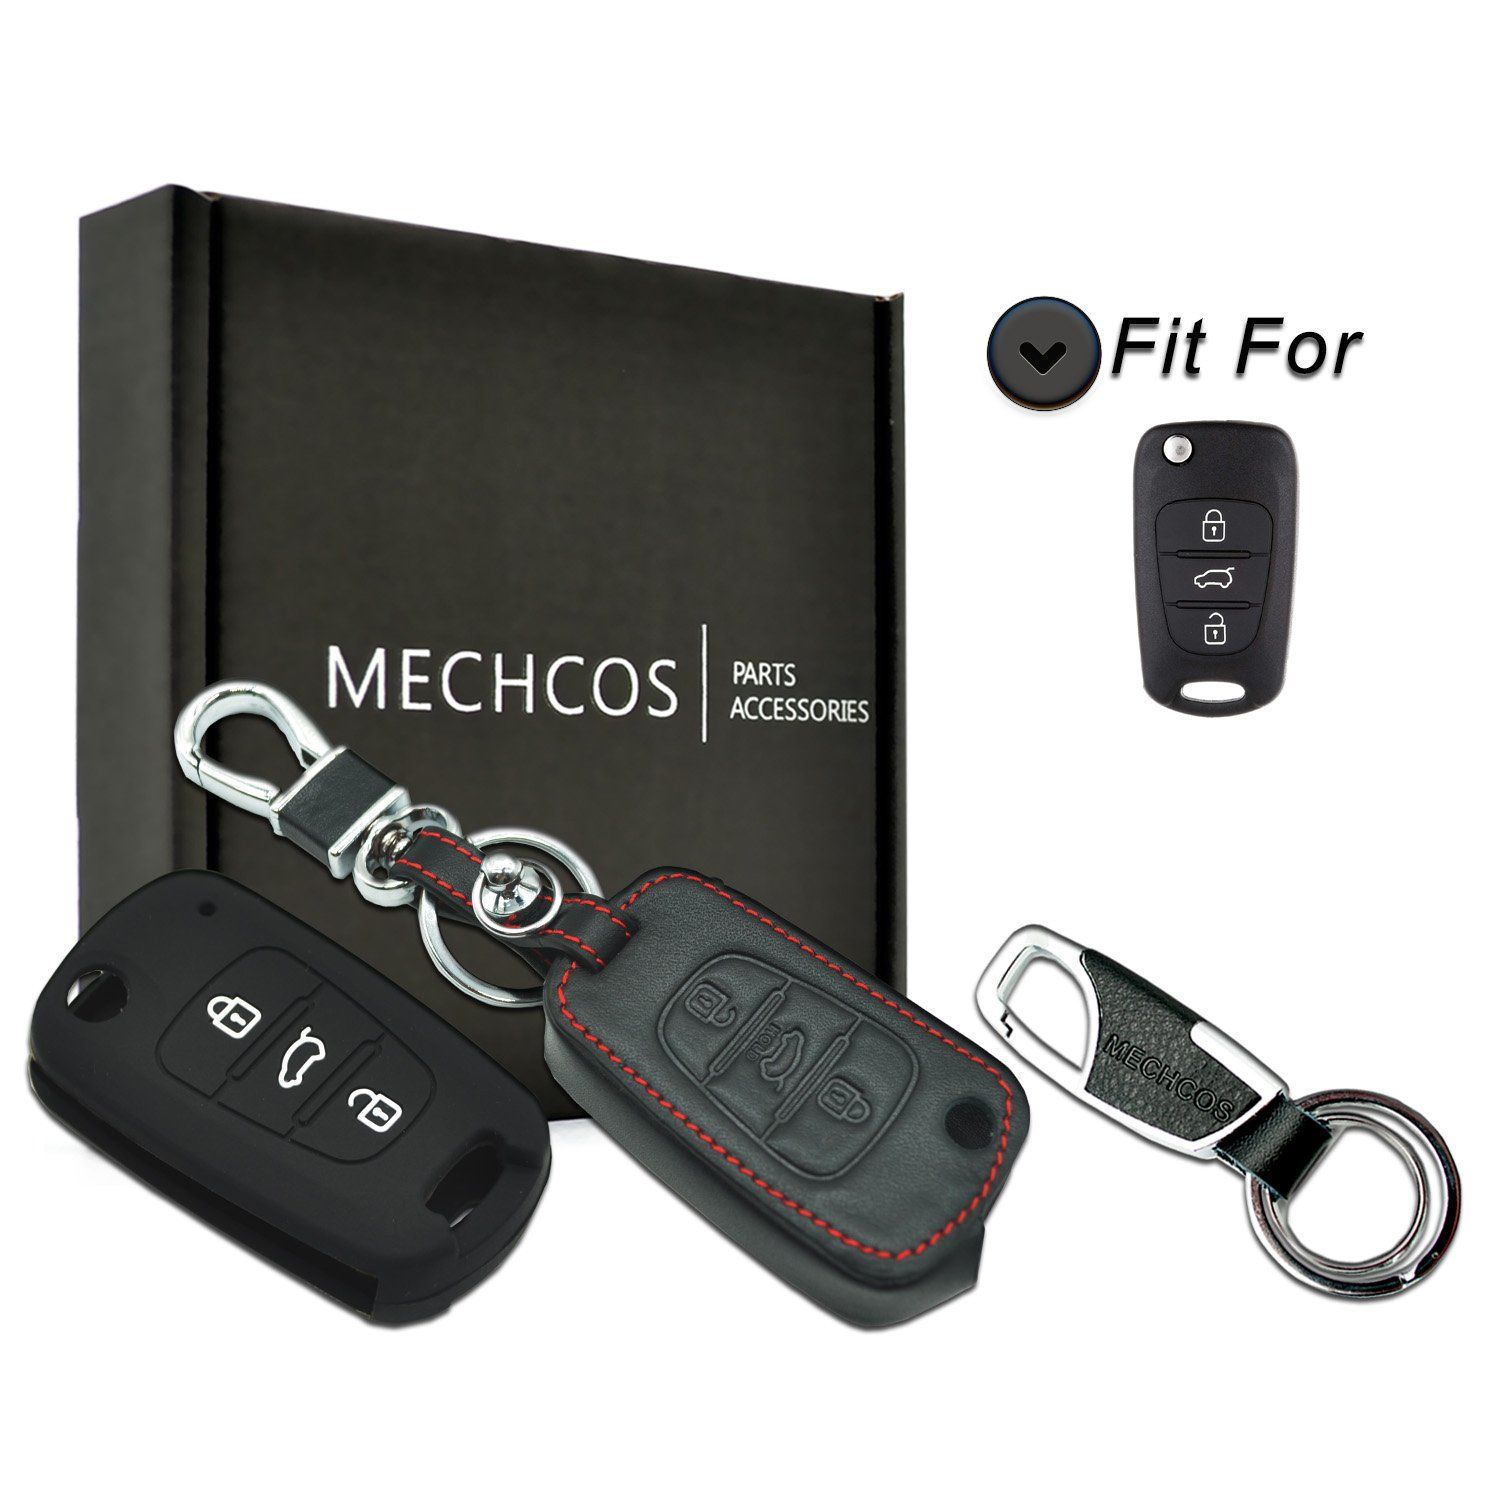 Mechcos Compatible With Fit For Kia Sportage Optima Rio Soul 3